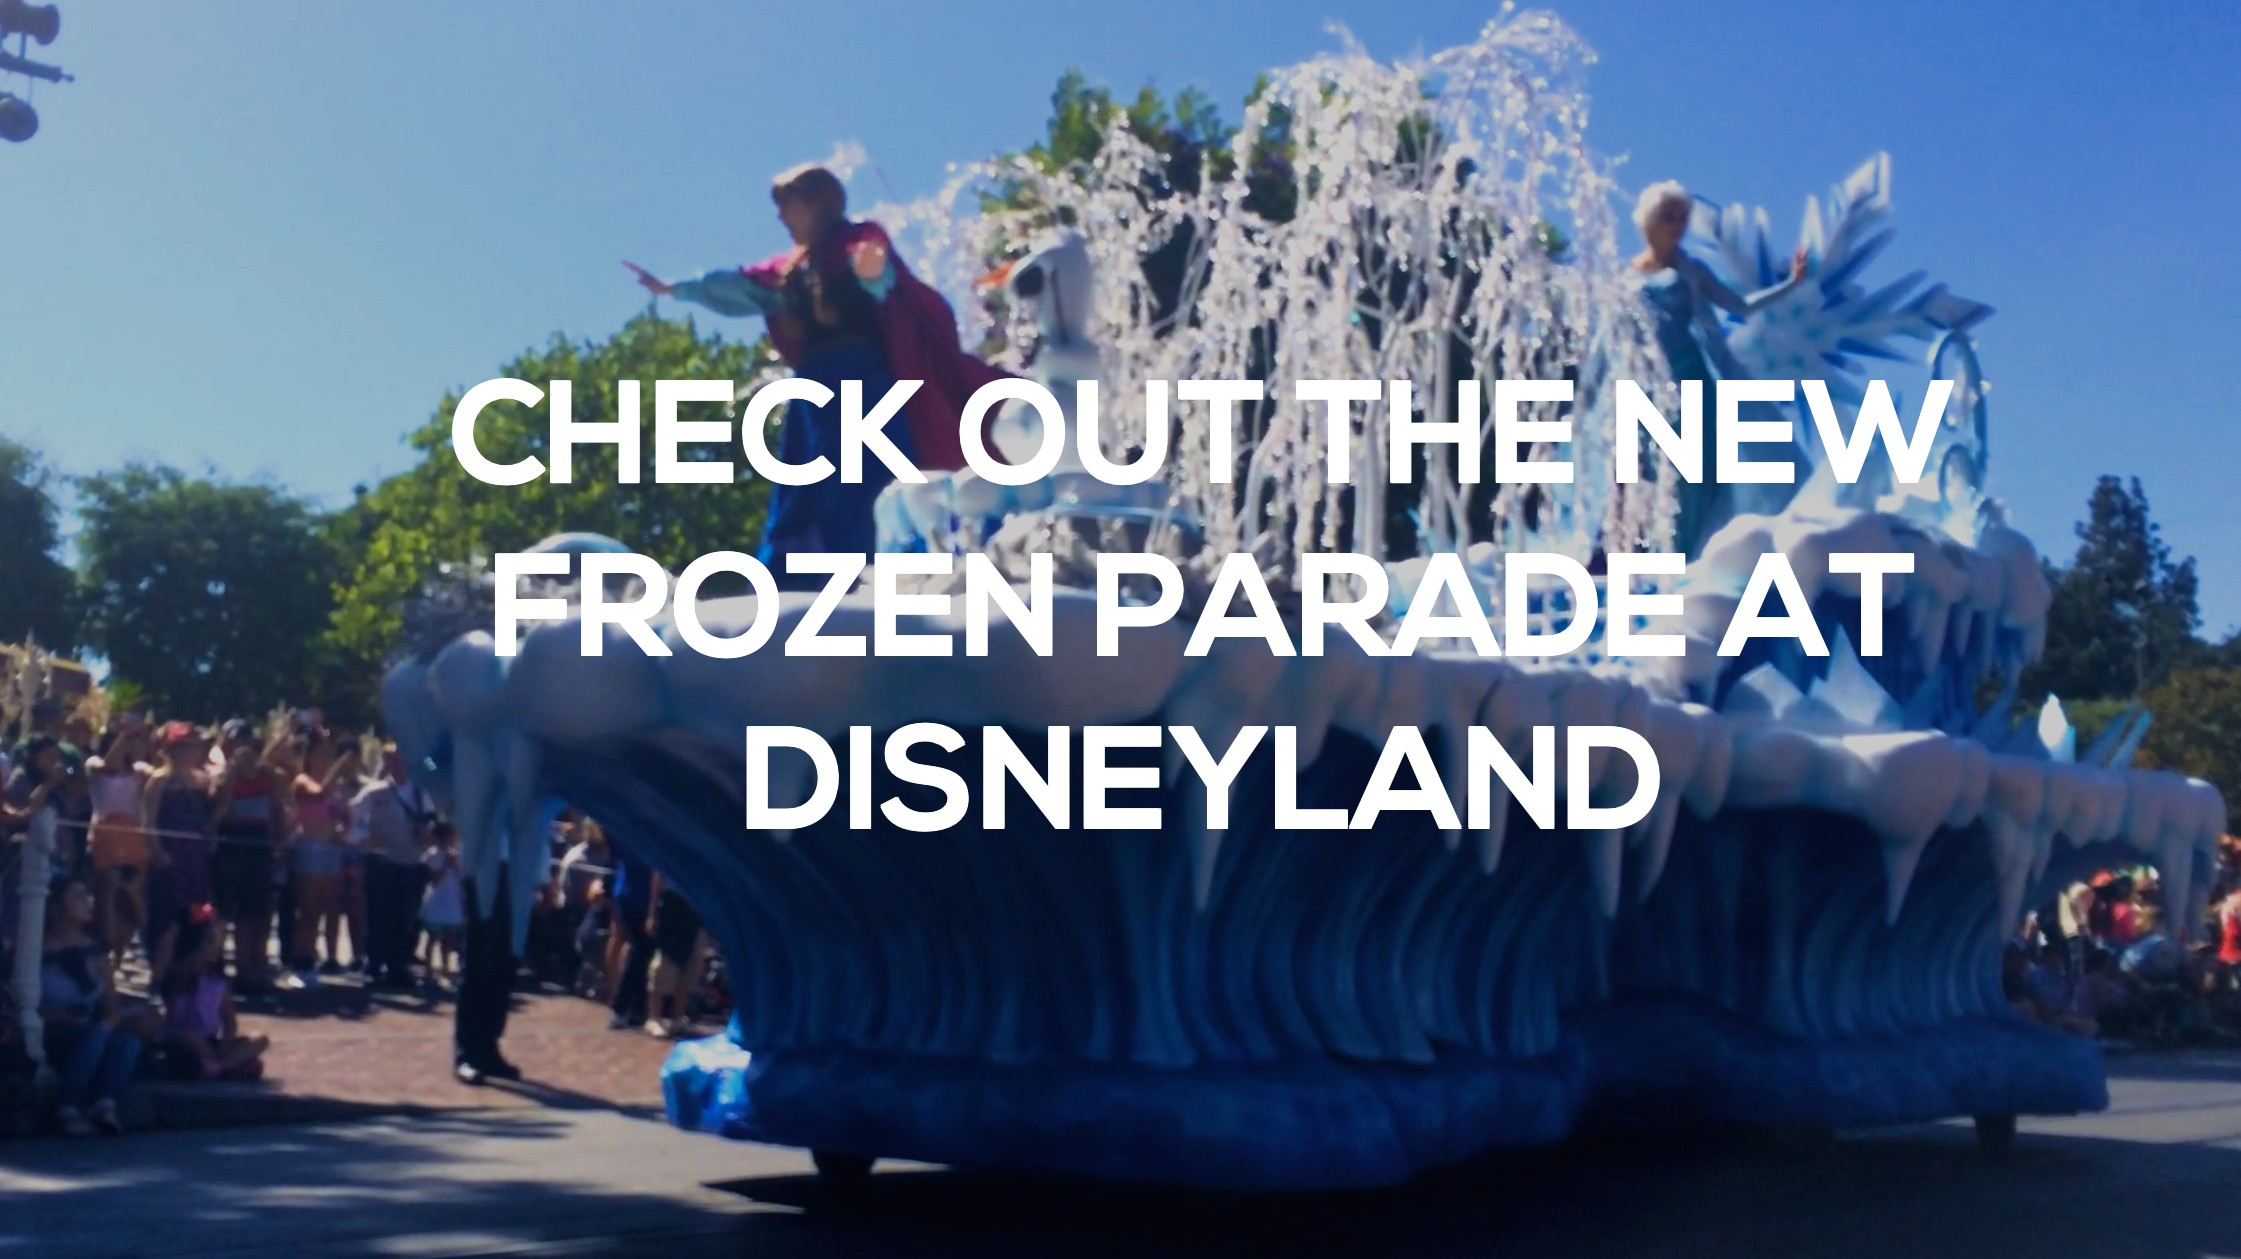 Watch The Frozen Parade At Disneyland Without Waiting In Line